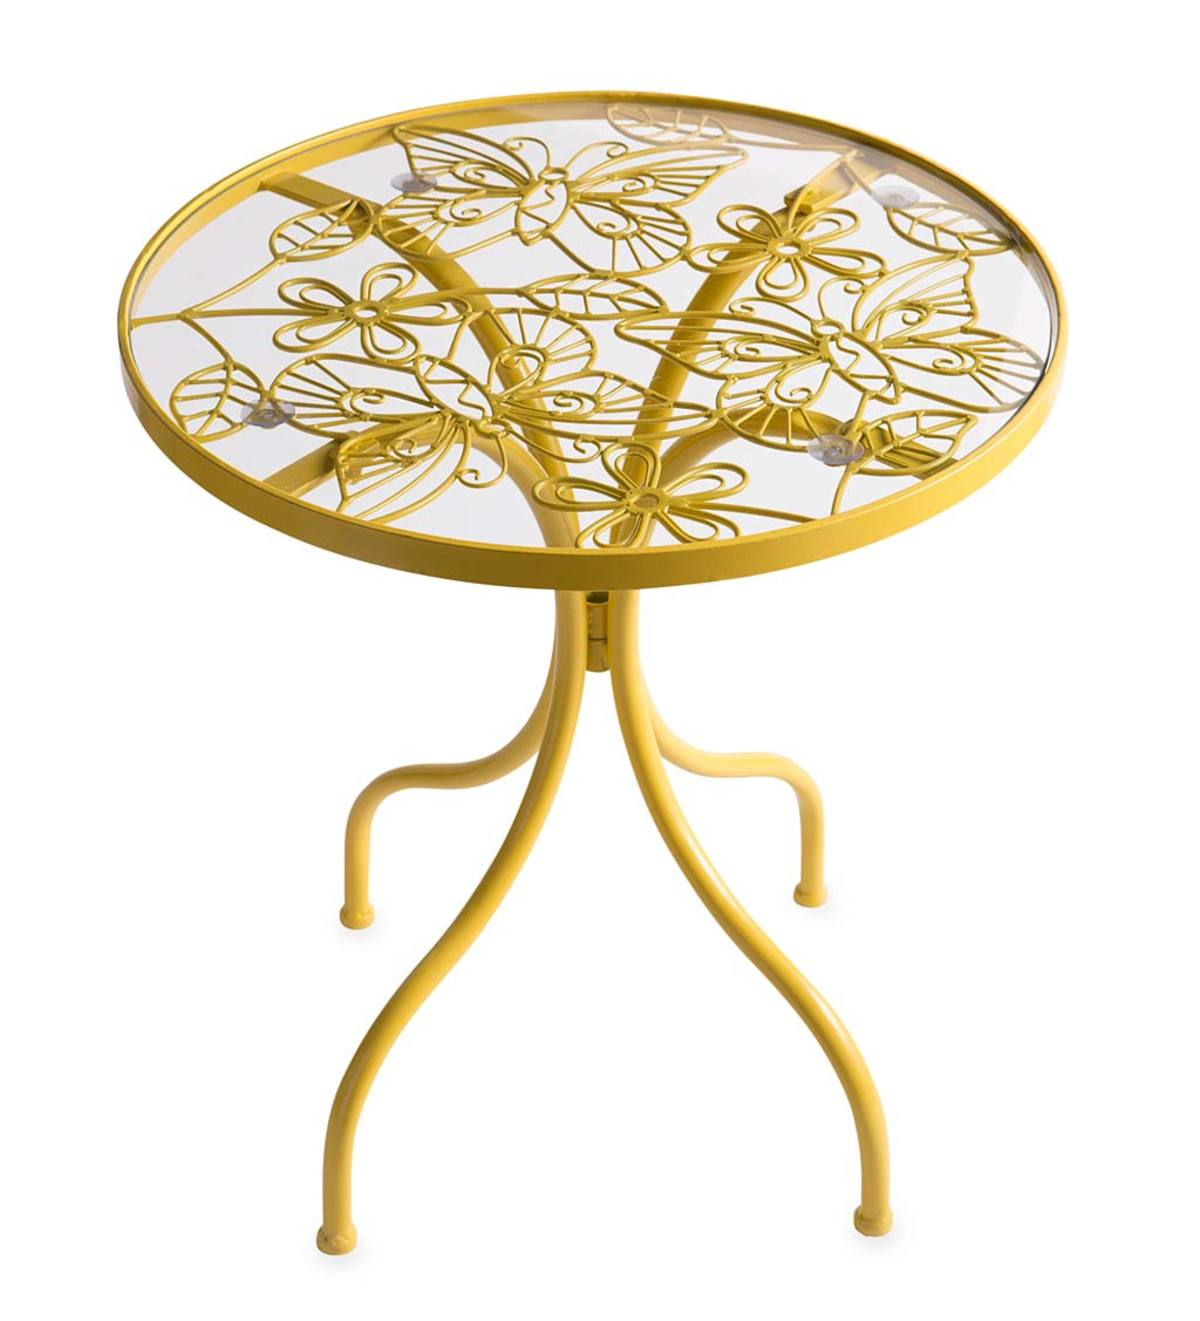 yellow butterfly metal side table plowhearth outdoor accent small patio with umbrella leather chairs porch furniture gold glass top coffee diy rustic large contemporary mcguire